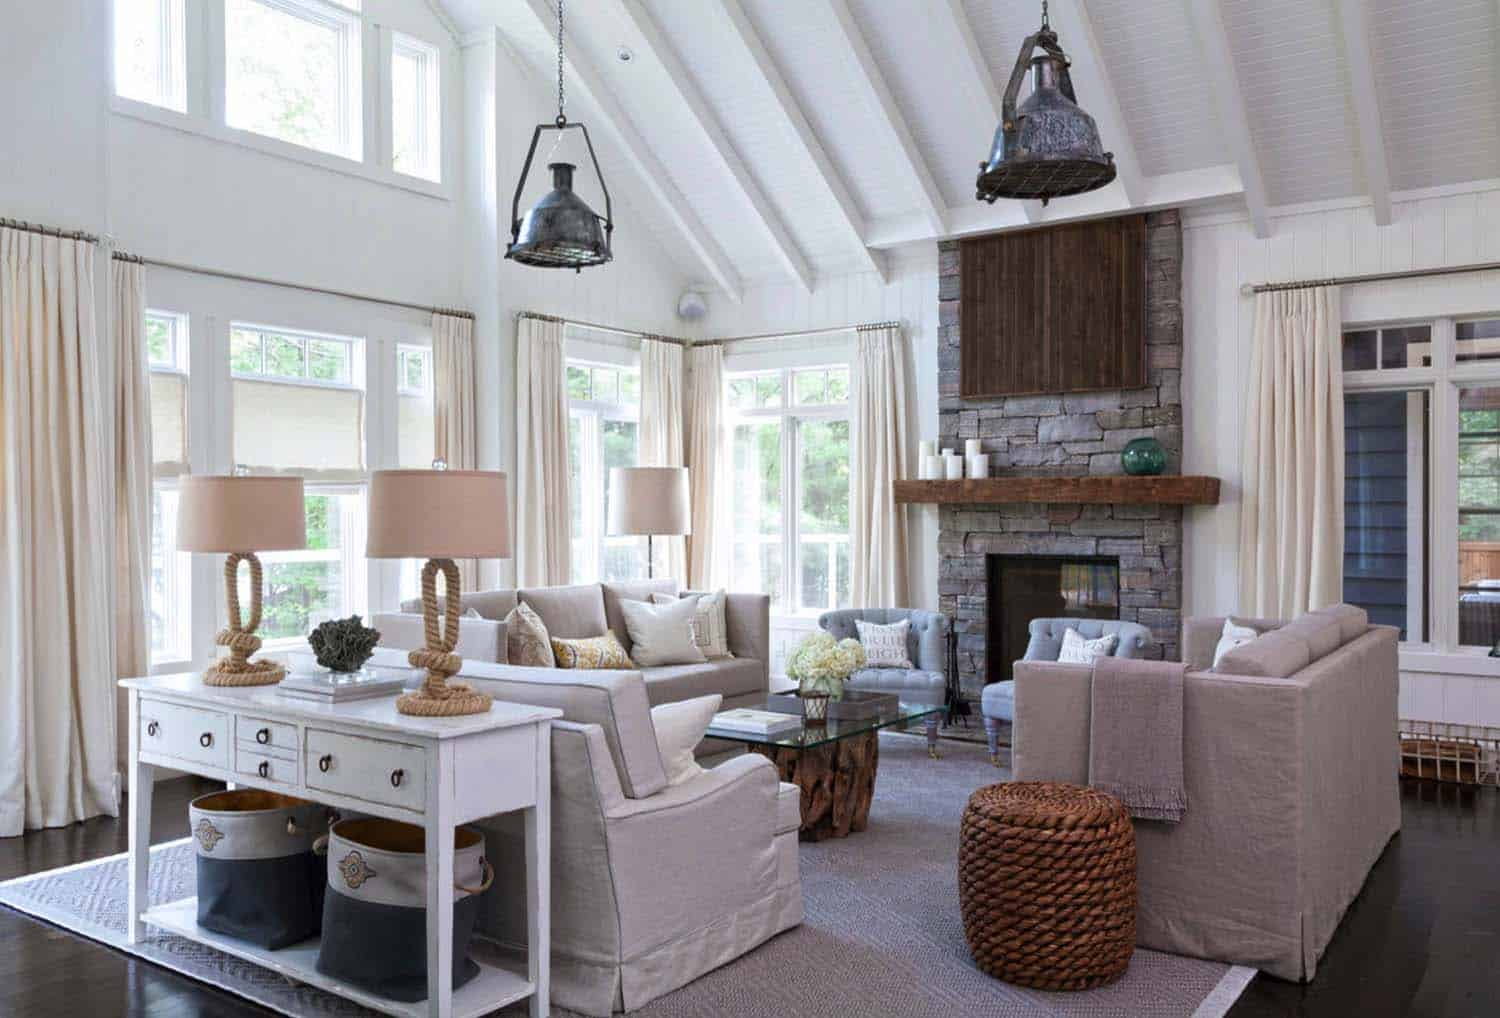 Muskoka beach cottage designed with fresh and inspiring details